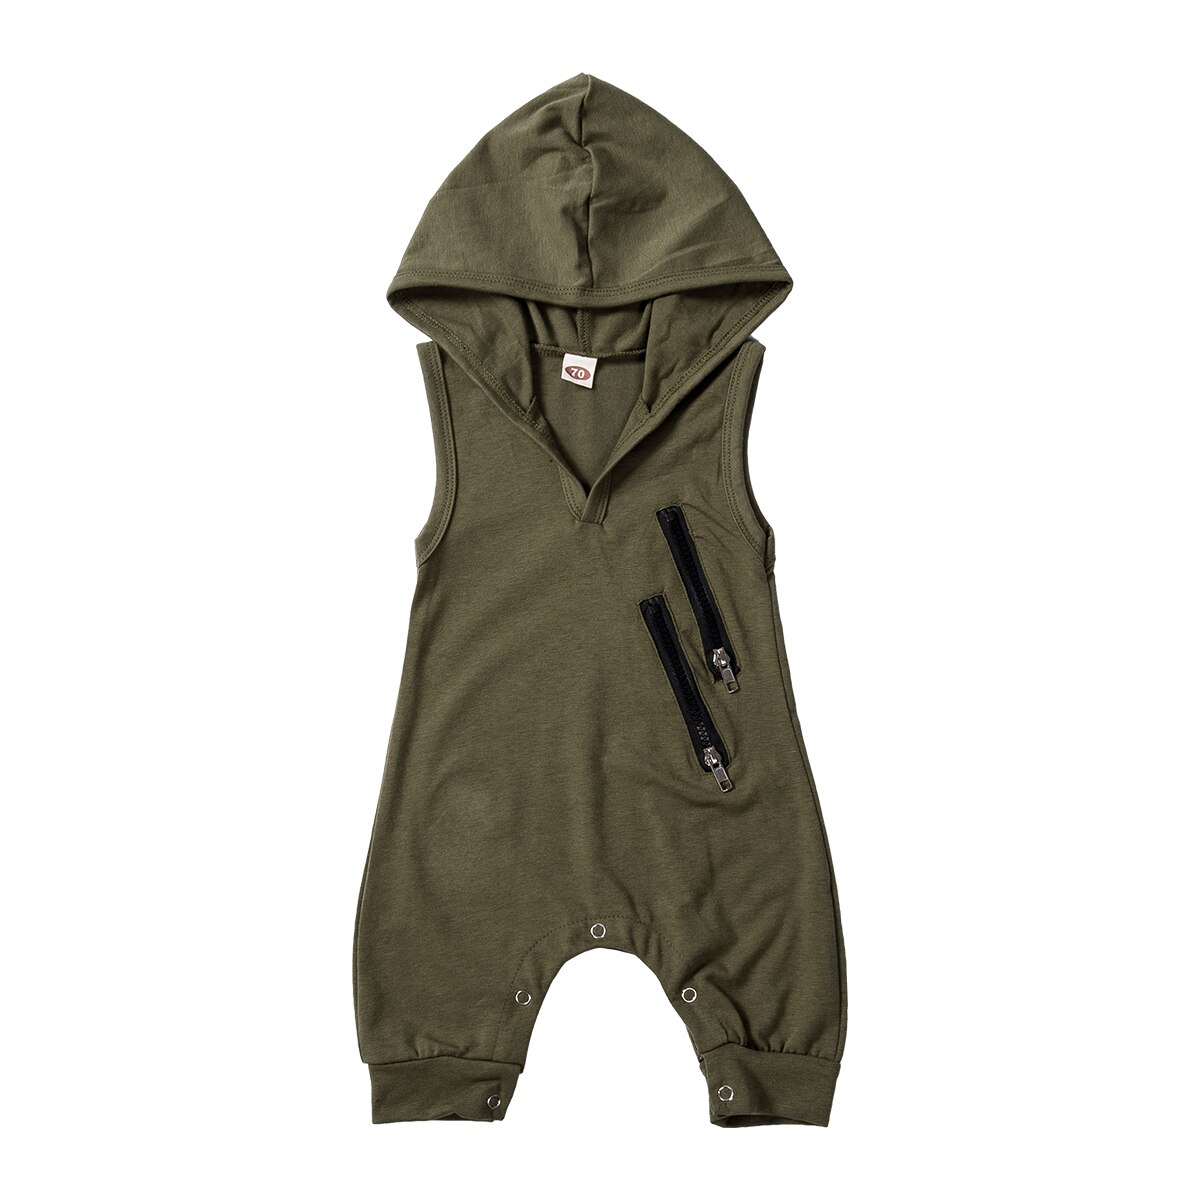 2021 Toddler Newborn Baby Boys Summer Clothing Infant Fashion Hooded Rompers Jumpsuits Camouflage Printed Sleeveless 0-24M